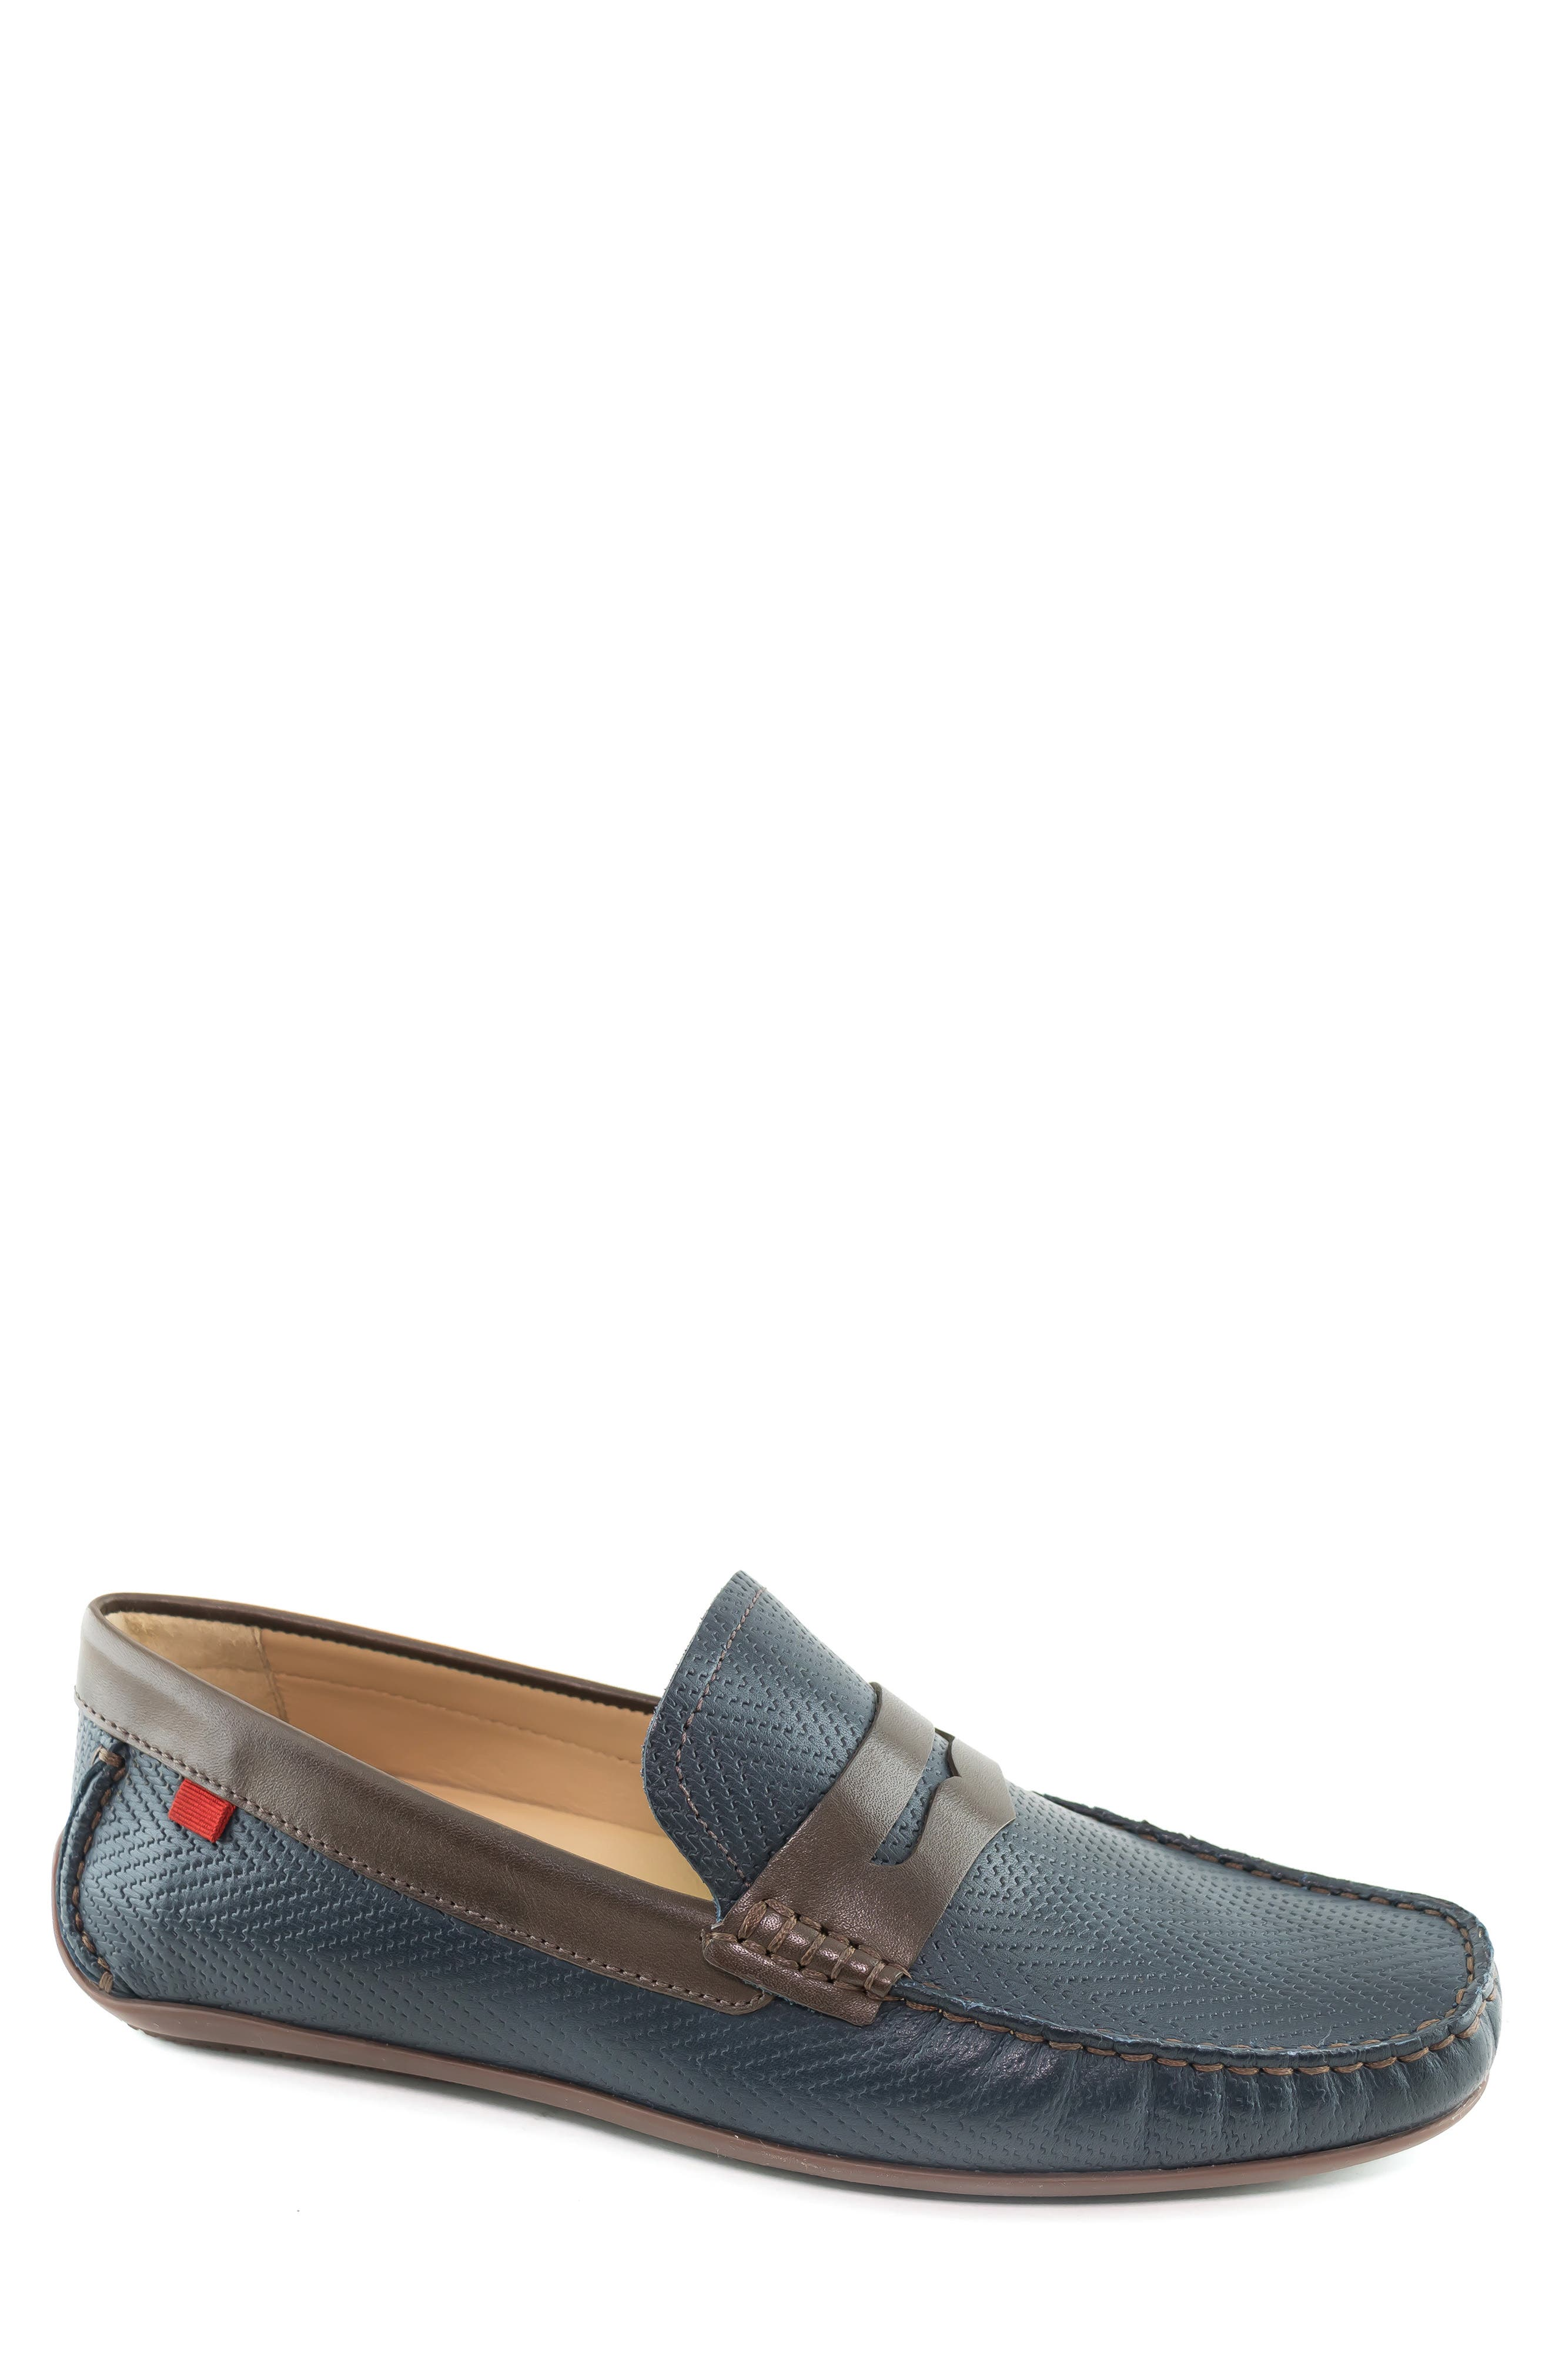 Whyte St Driving Shoe